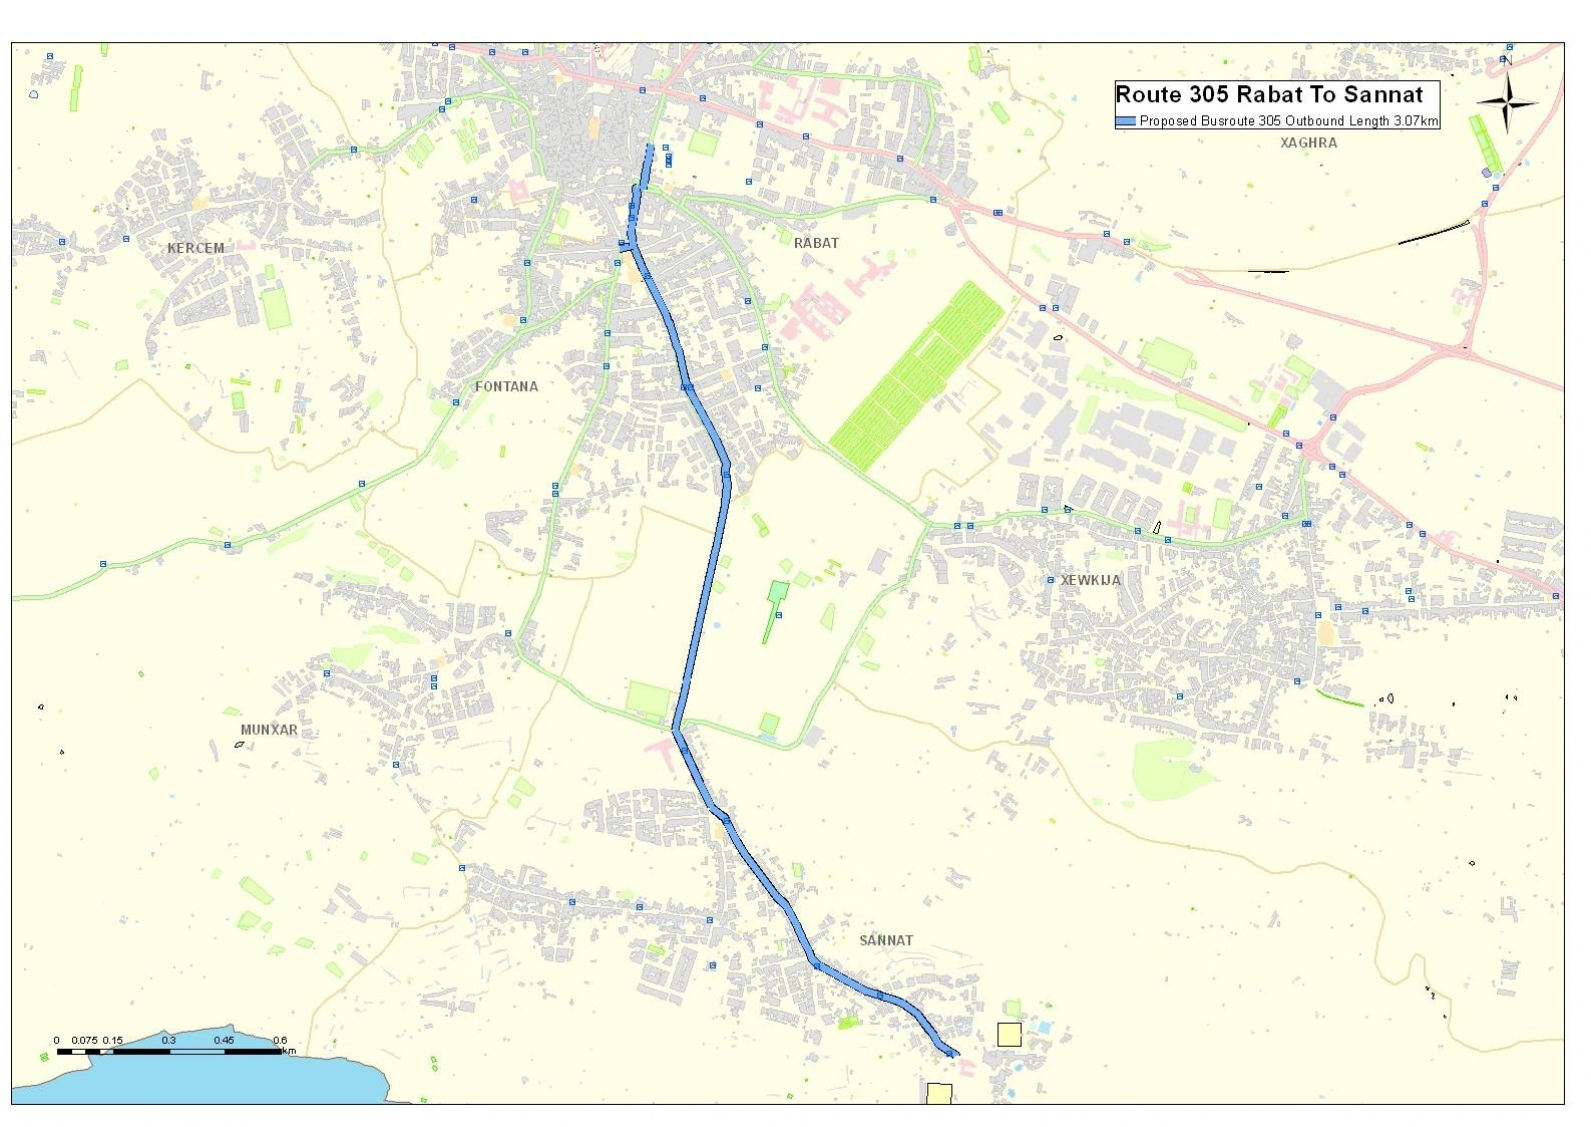 Land-current-network-routes-and-schedules-Gozo-10